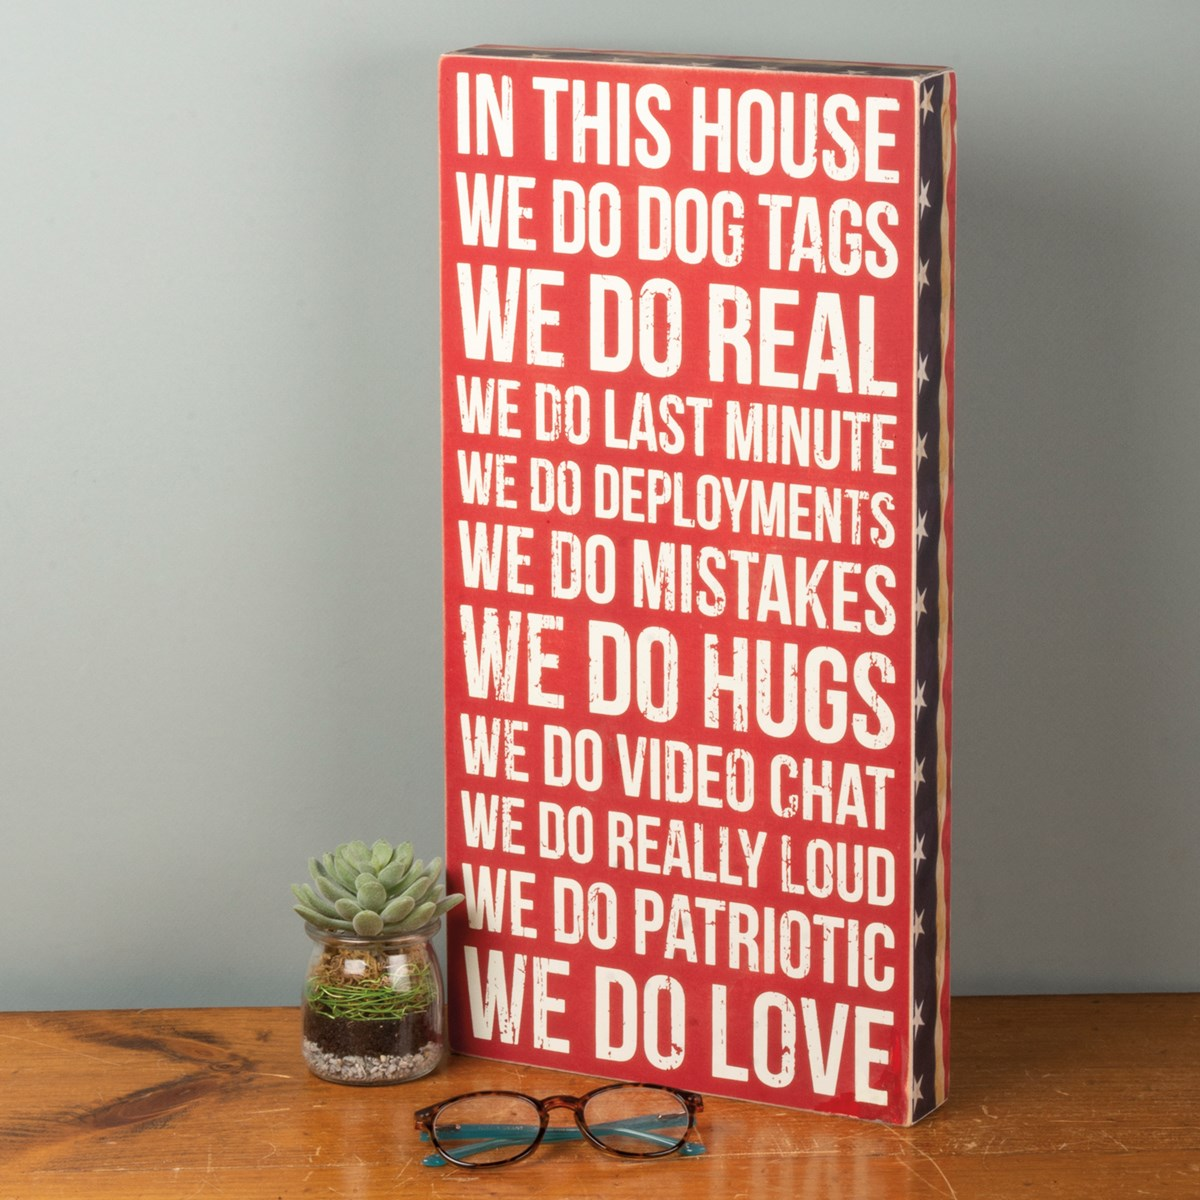 "Box Sign - We Do Dog Tags - 10"" x 20"" x 1.75"" - Wood, Paper"